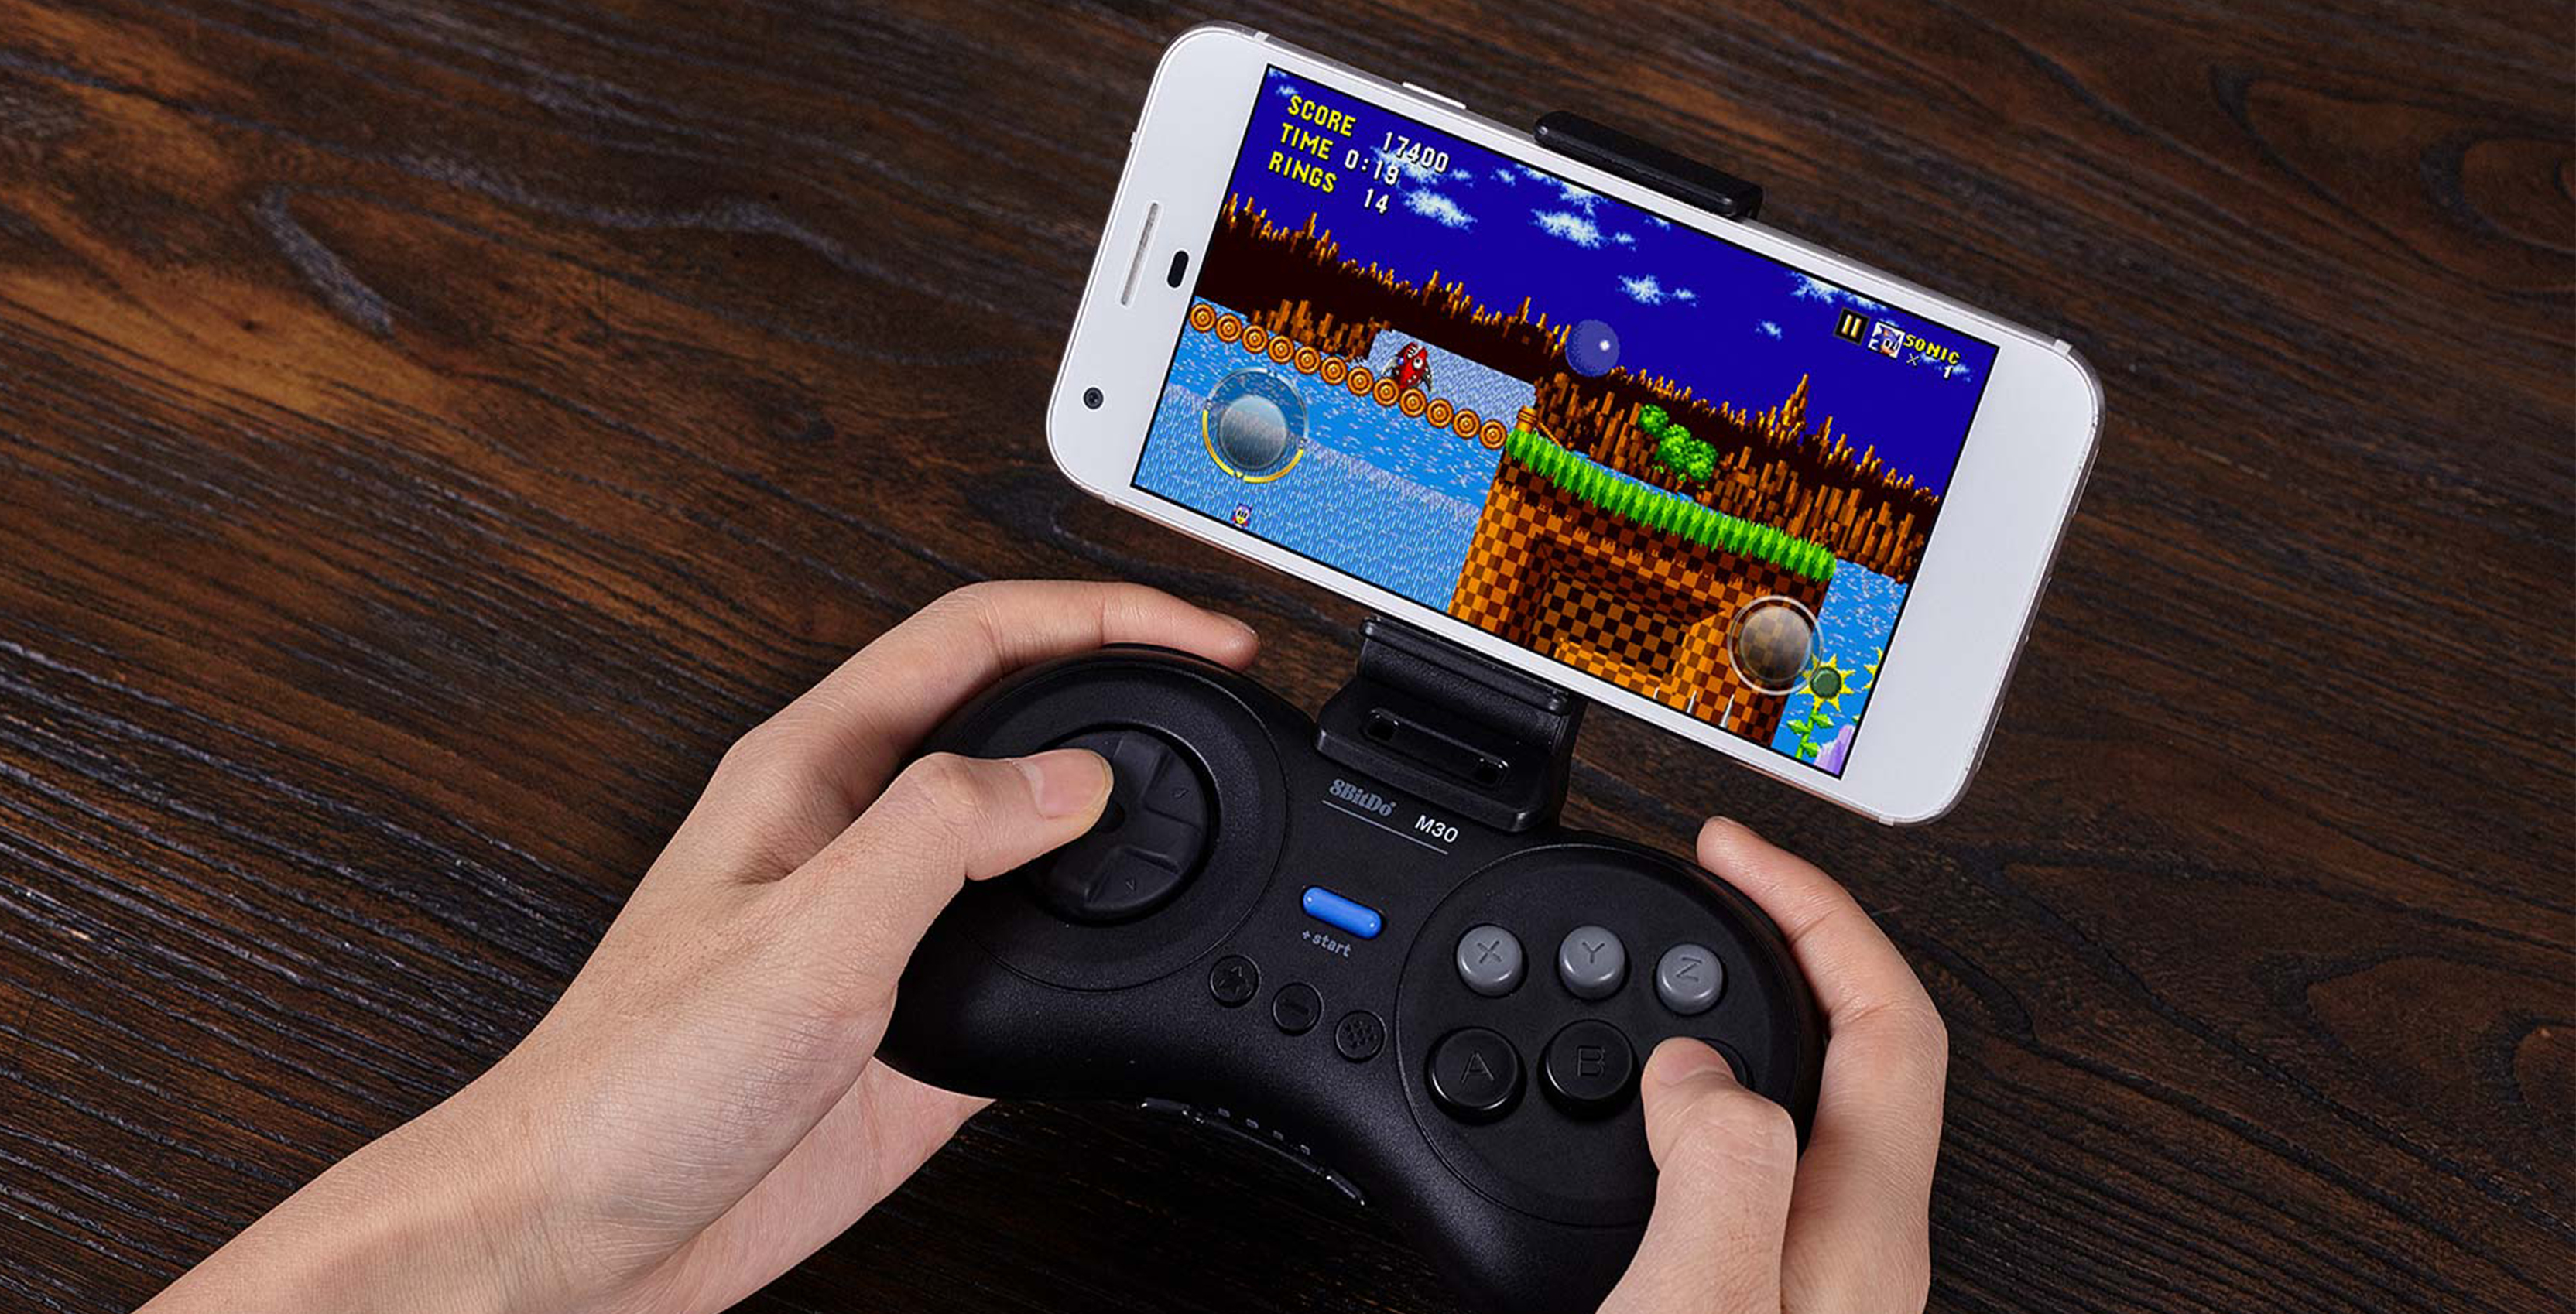 8BitDo's Genesis controller lets you play Classic Sonic the